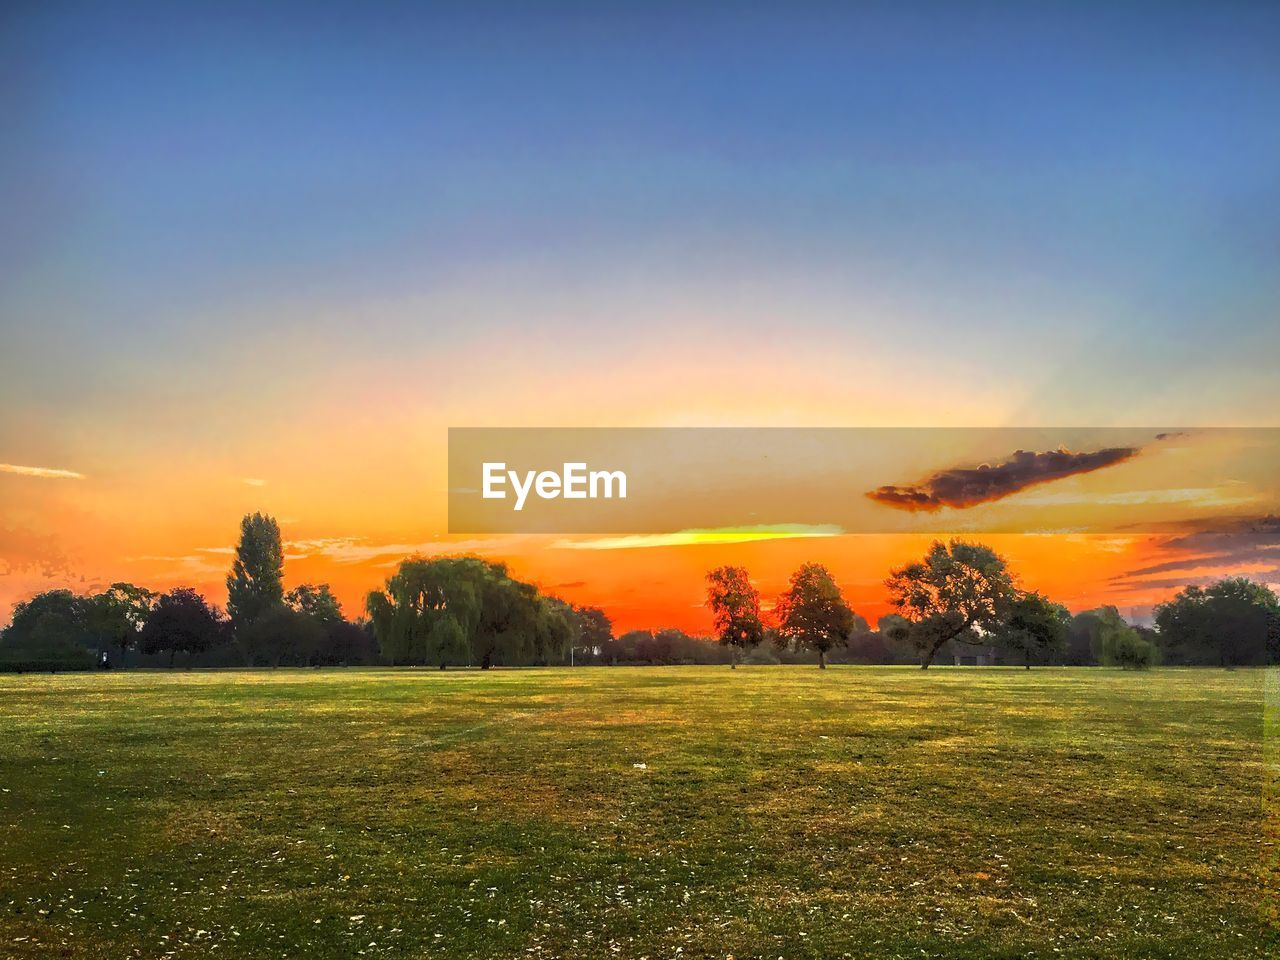 sunset, grass, field, nature, beauty in nature, tranquil scene, tranquility, landscape, orange color, scenics, tree, no people, sky, outdoors, growth, rural scene, day